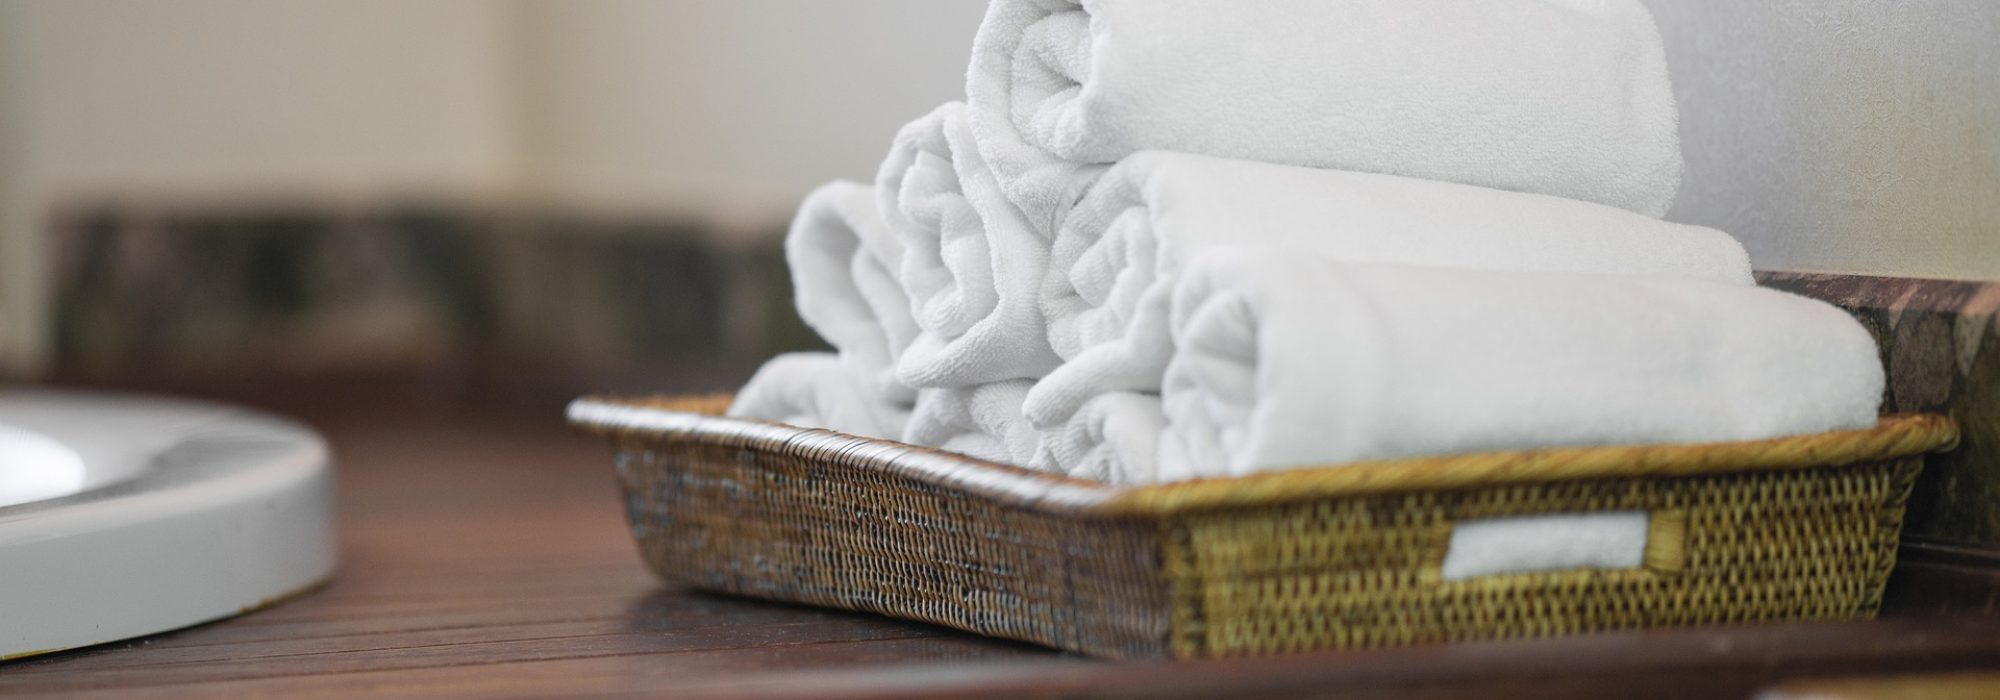 towel-g33afbe86a_1920